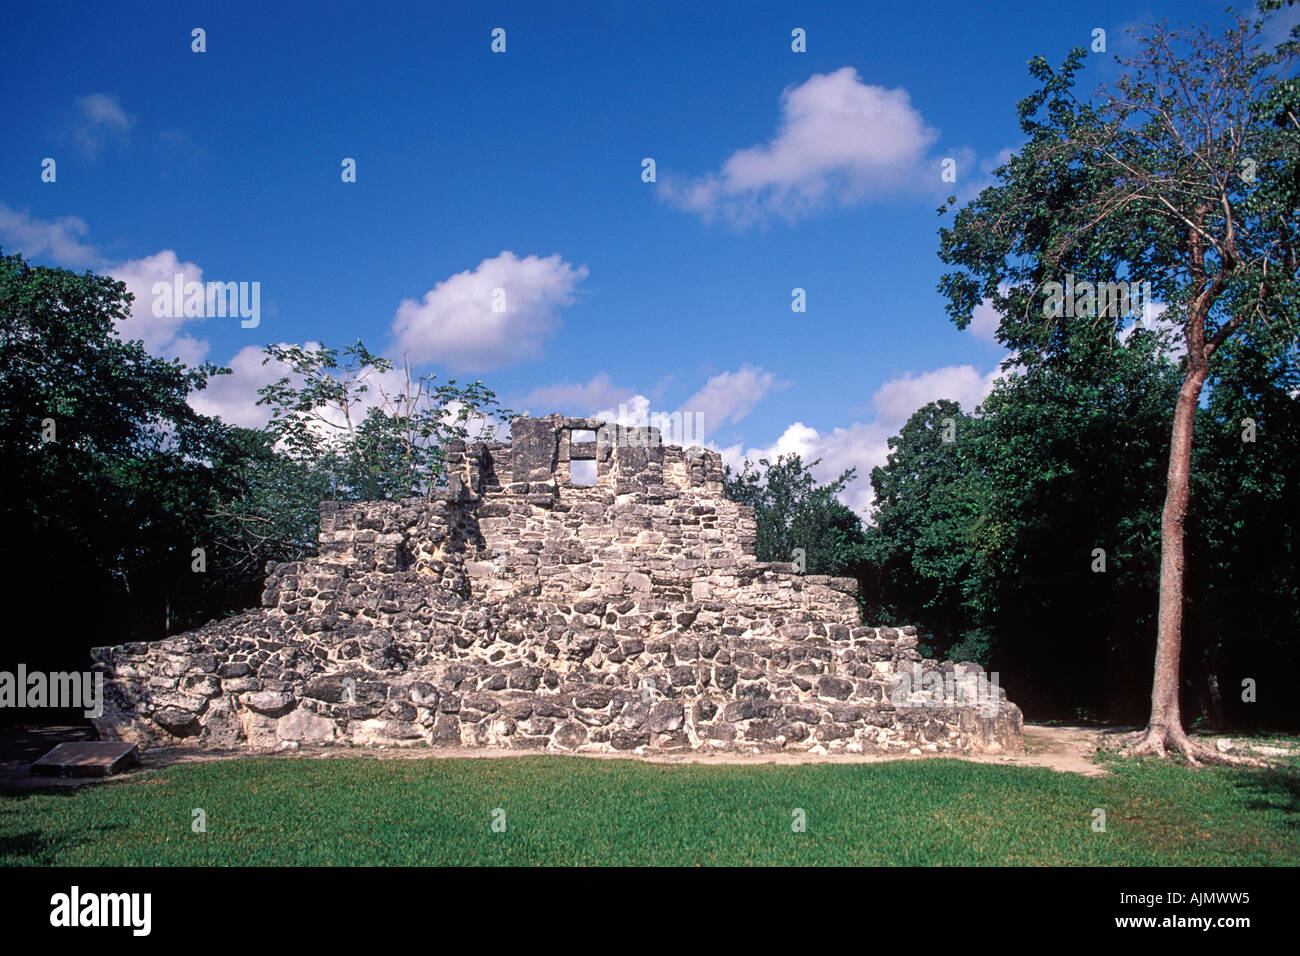 Ruins of the San Gervasio archaeological Mayan ruins site on the island of Cozumel in Mexico. - Stock Image